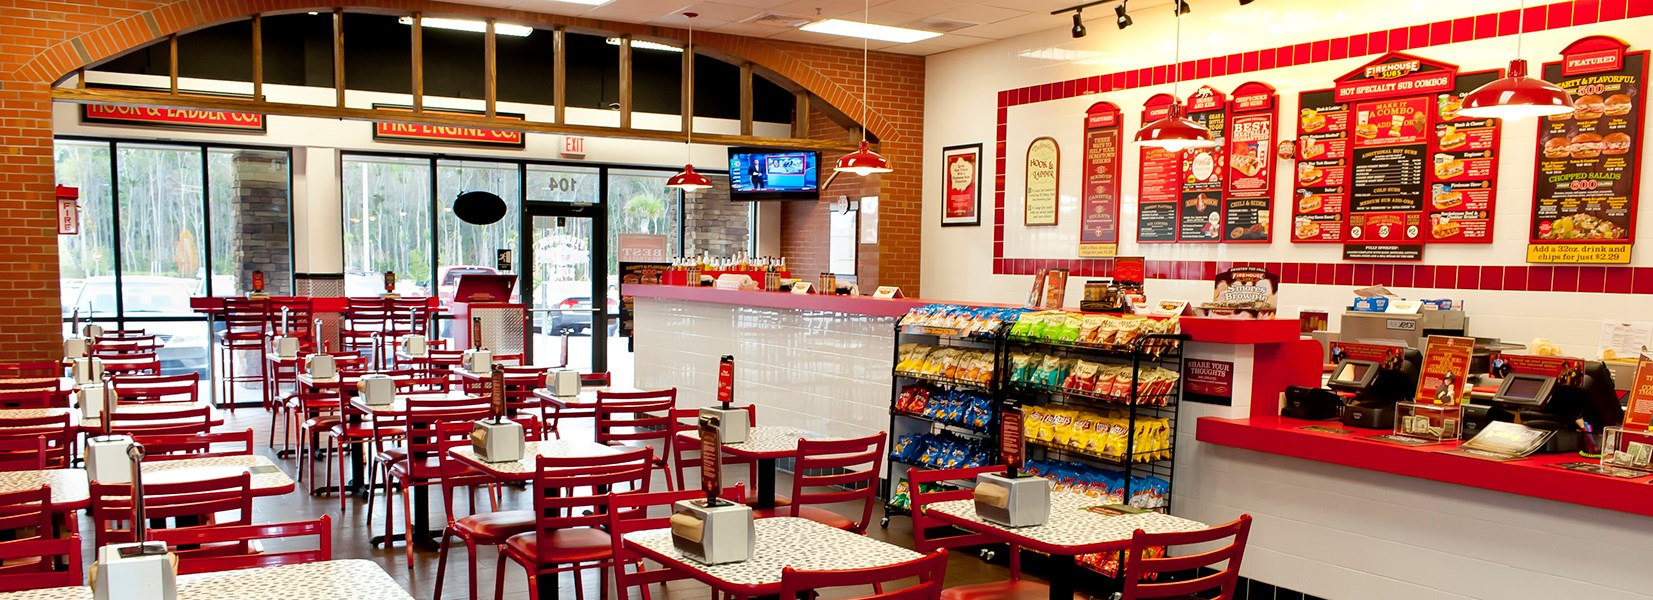 FIREHOUSE SUBS FEATURED IN ENTREPRENEUR